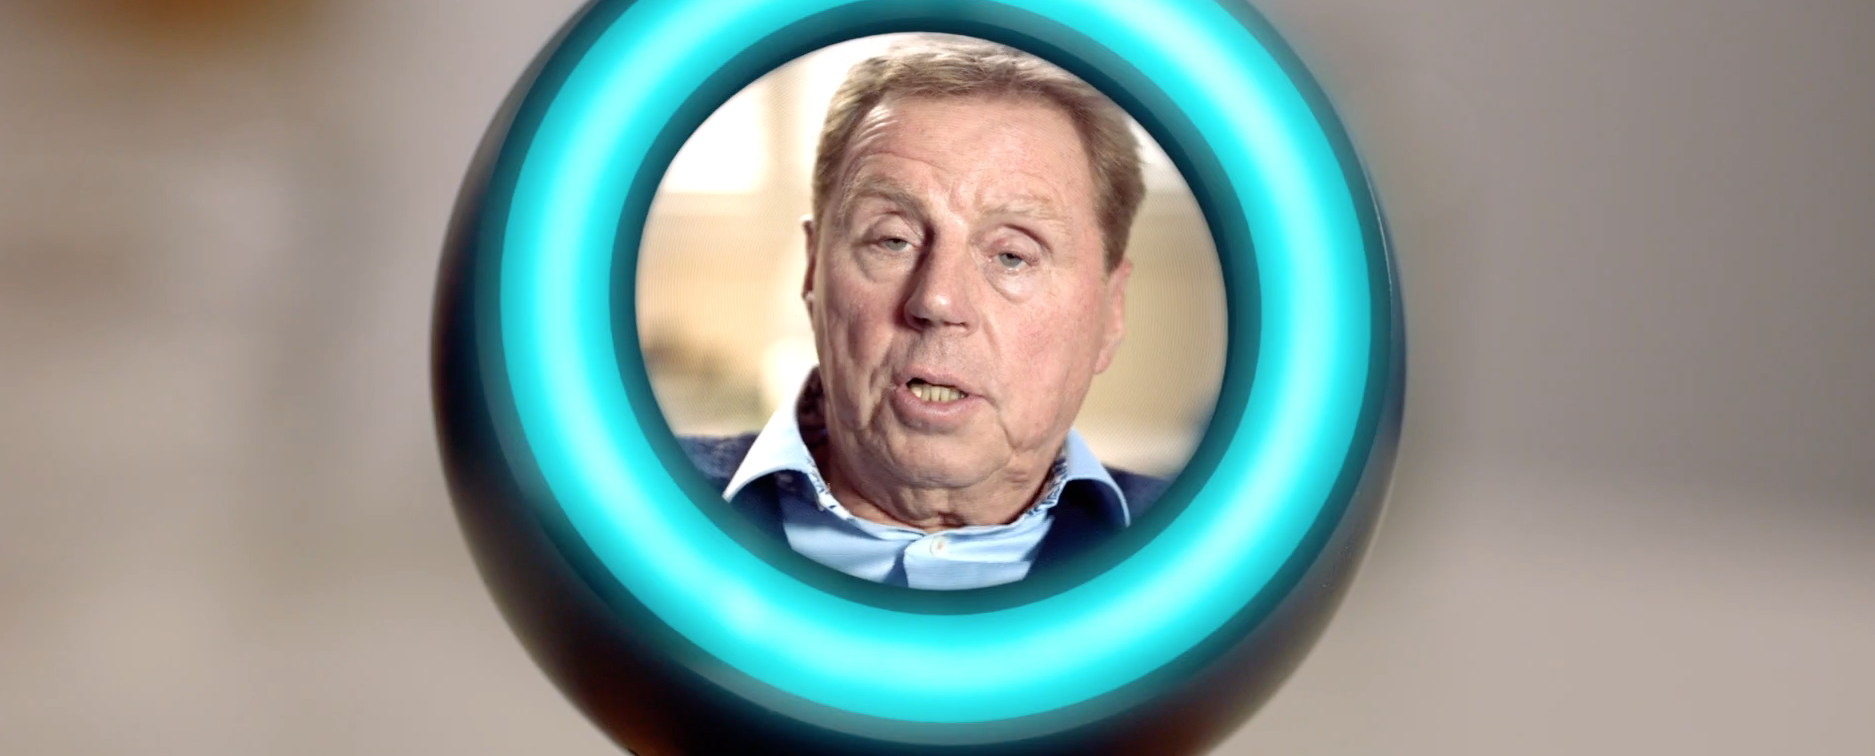 """Hey, Harry!"" Harry Redknapp Stars As A Smart Home Device In New Ad"